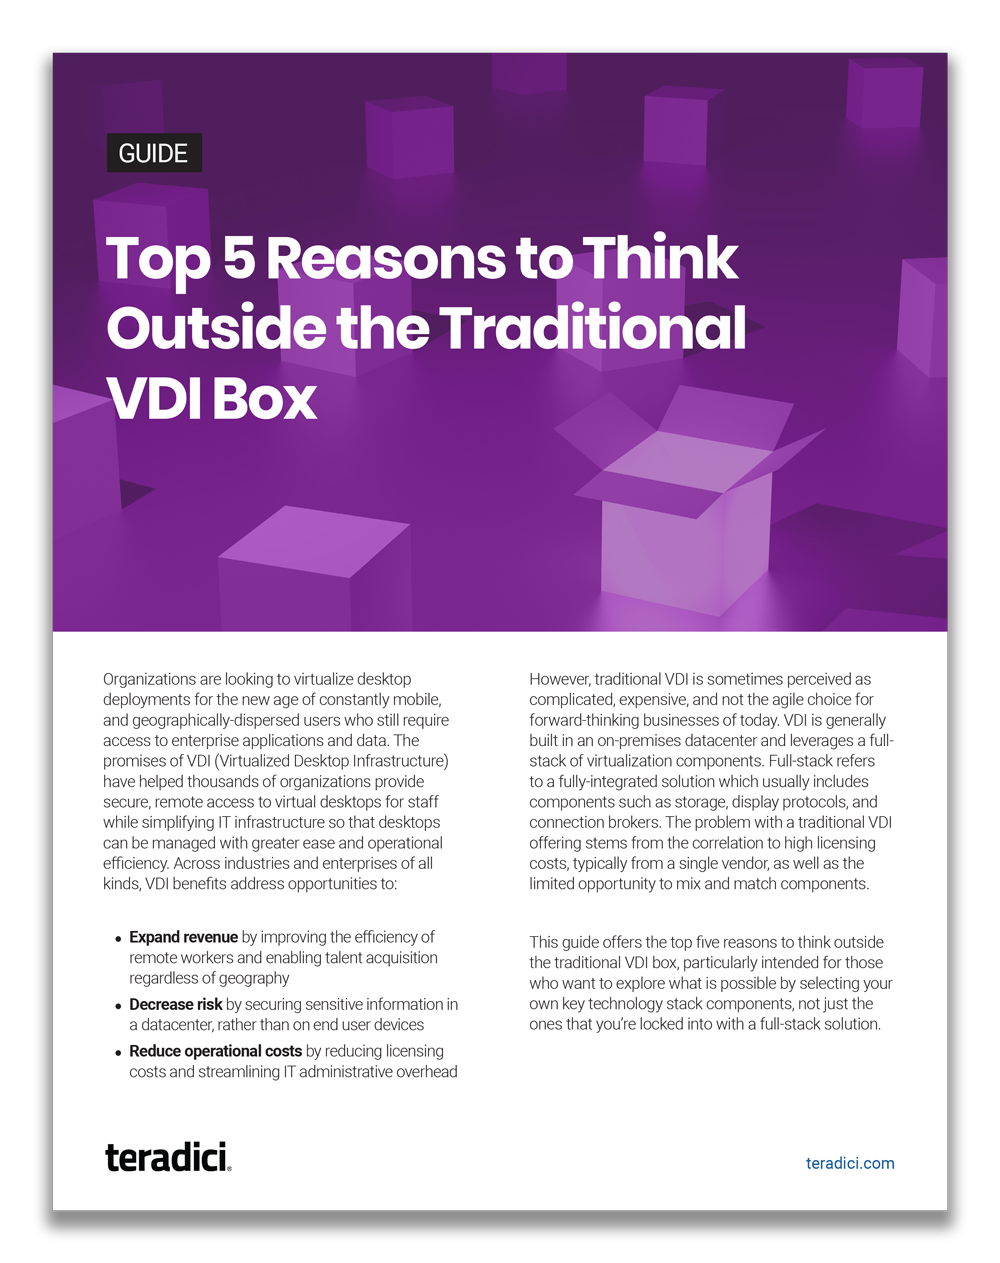 5-Reasons-to-think-outside-the-VDI-box